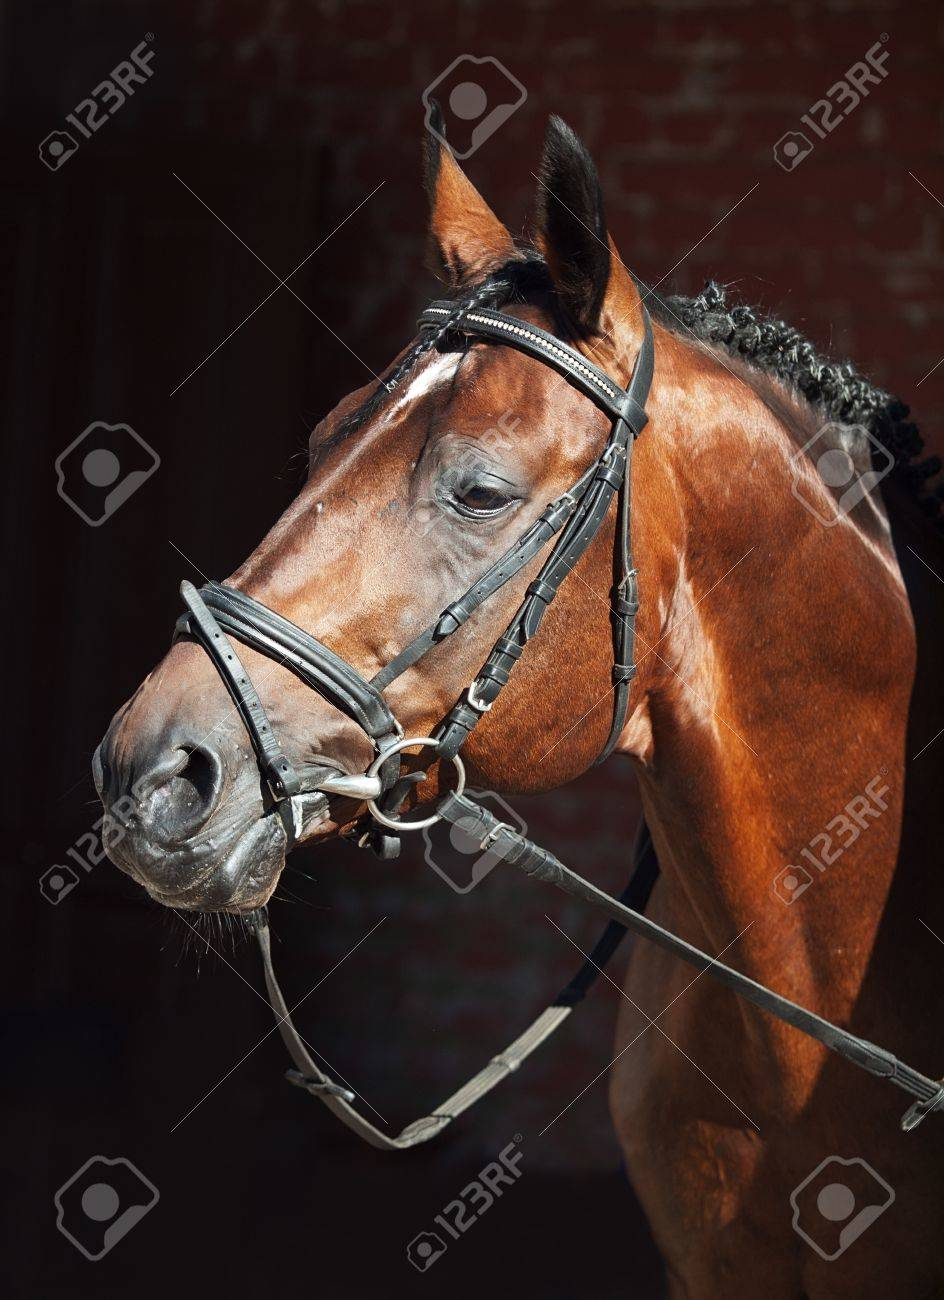 Beautiful Horse Stables Horse on Stable Background